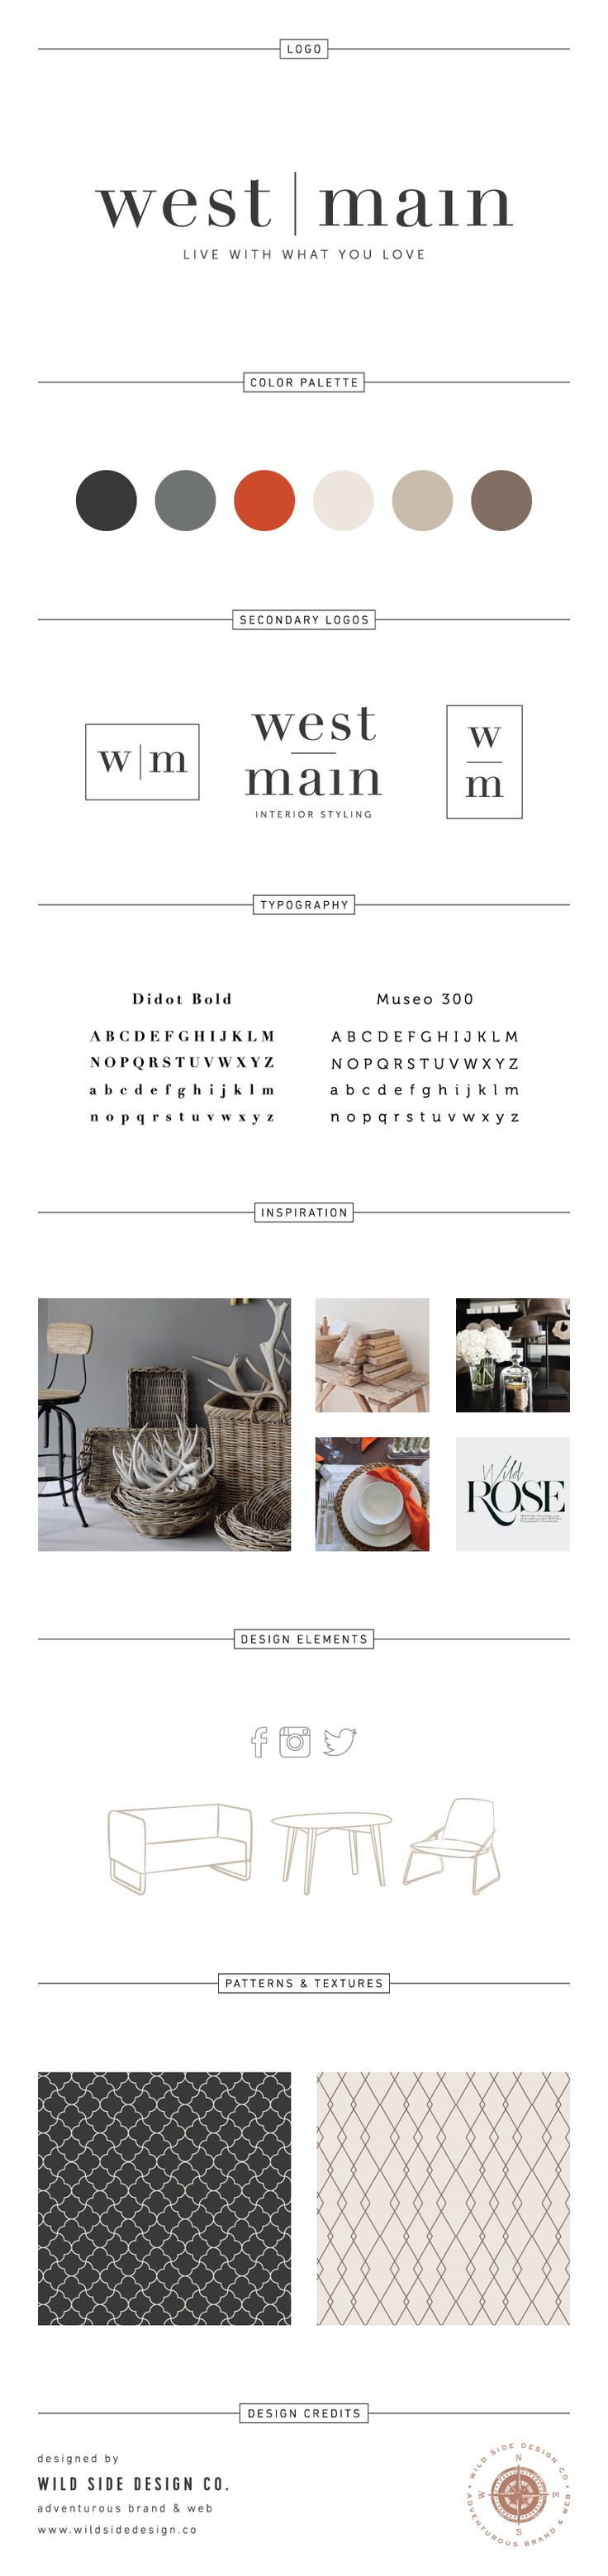 Brand Launch :: Brand Style Board :: Interior Stylist Branding :: West Main Brand Design :: #branding www.wildsidedesign.co